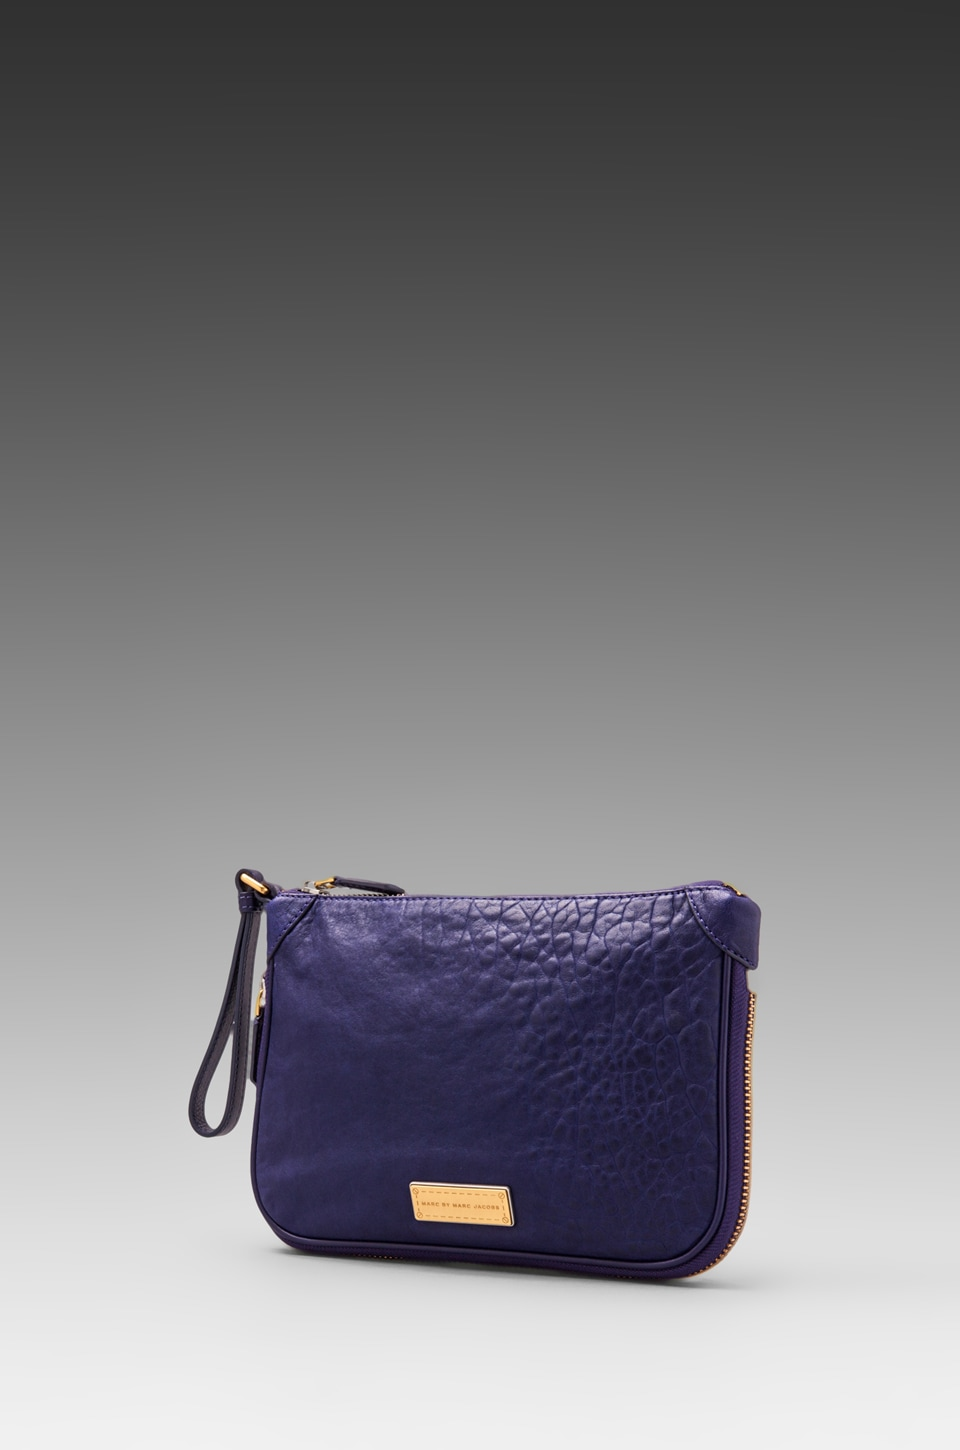 Marc by Marc Jacobs Washed Up Zip Clutch in Electric Stage Blue